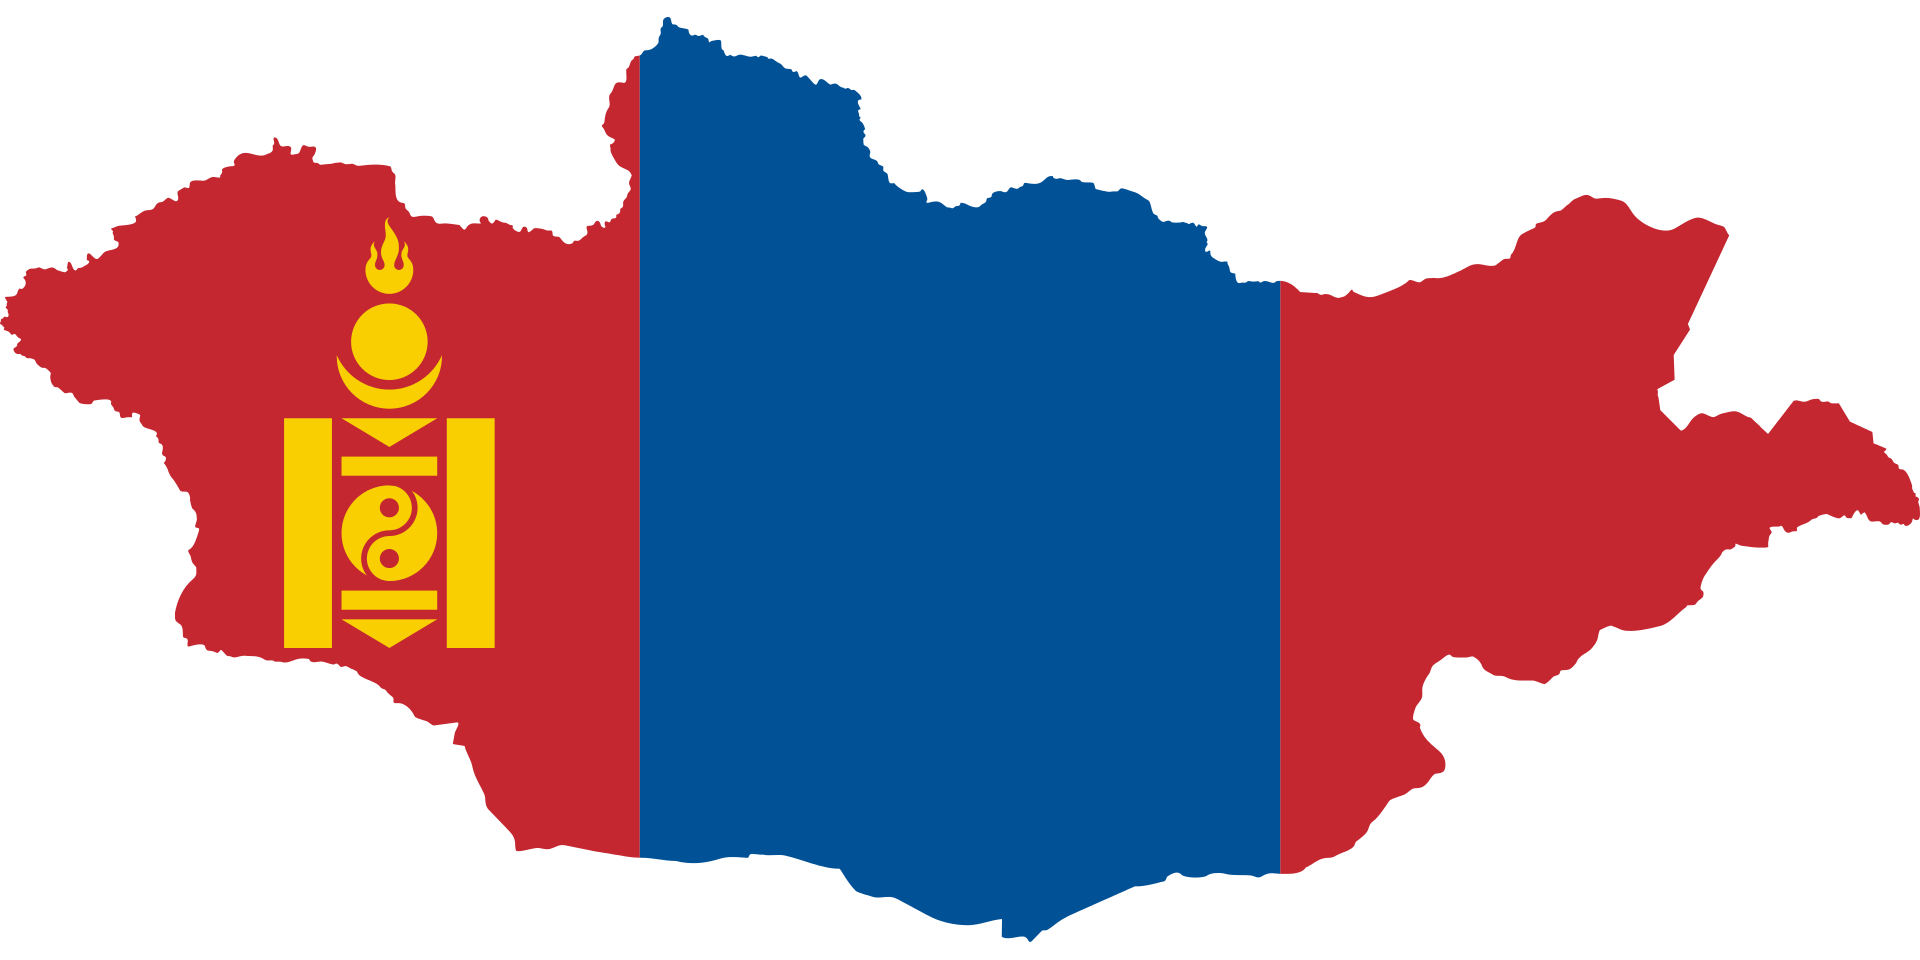 Mongolia Map Flag, Polluted Countries